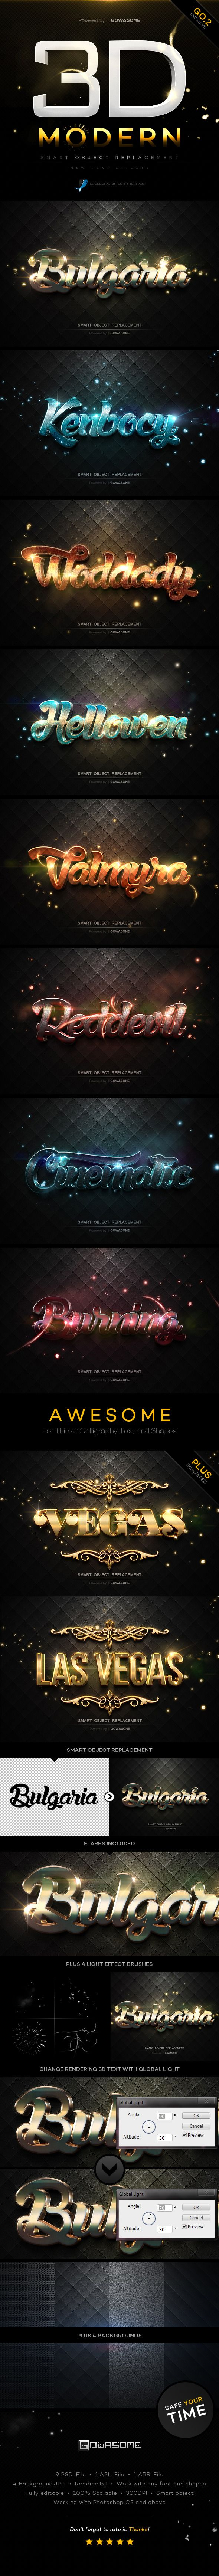 Modern 3D Text Effects GO.2 #photoshop Download here: http://graphicriver.net/item/modern-3d-text-effects-go2/10185160?ref=ksioks